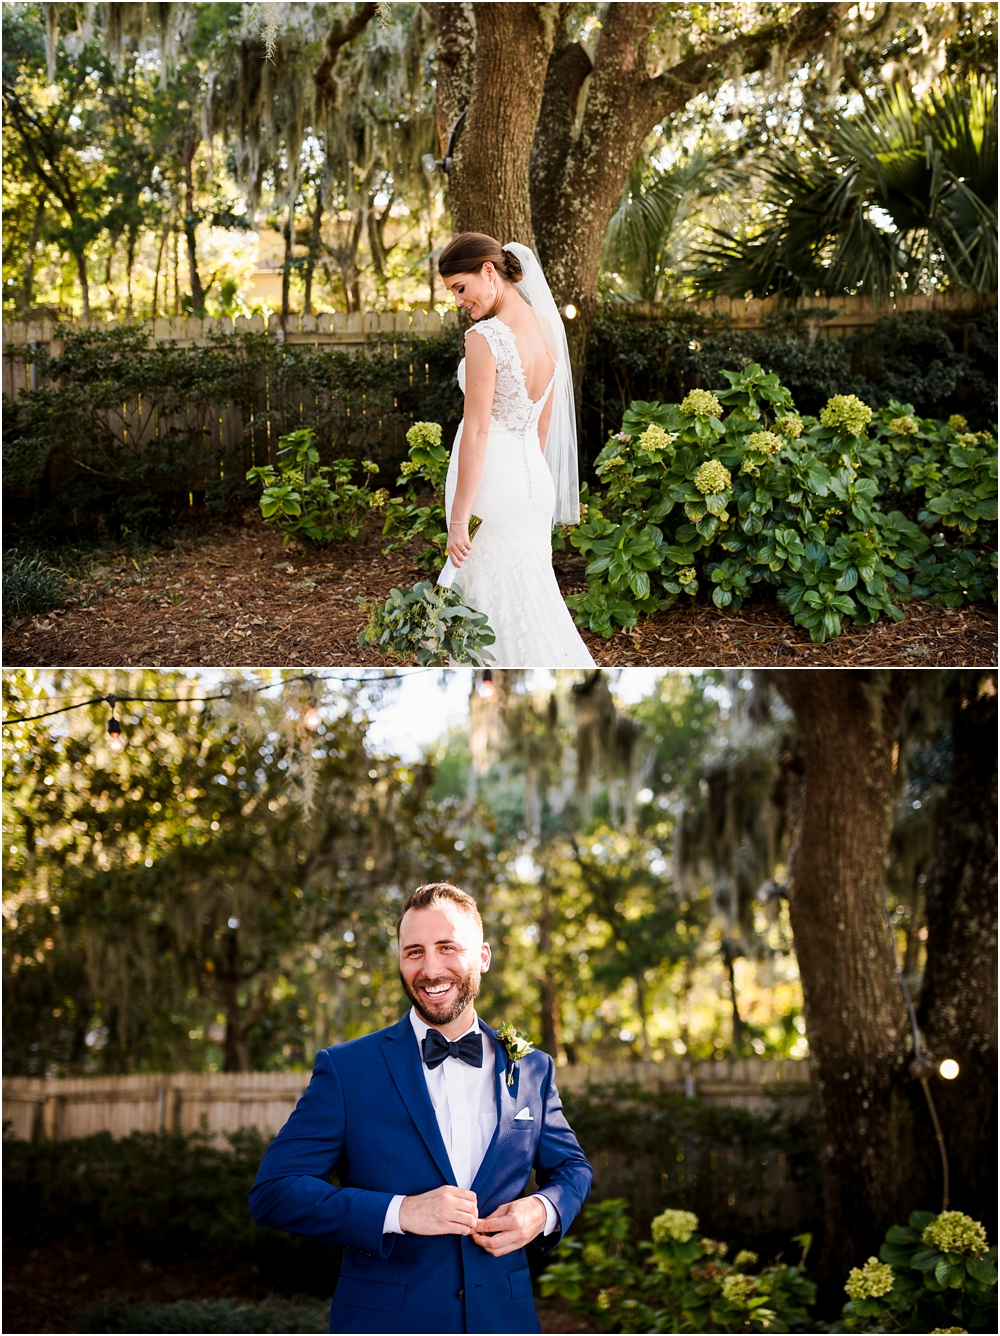 varner-florida-wedding-photographer-30a-panama-city-beach-destin-tallahassee-kiersten-grant-photography-63.jpg